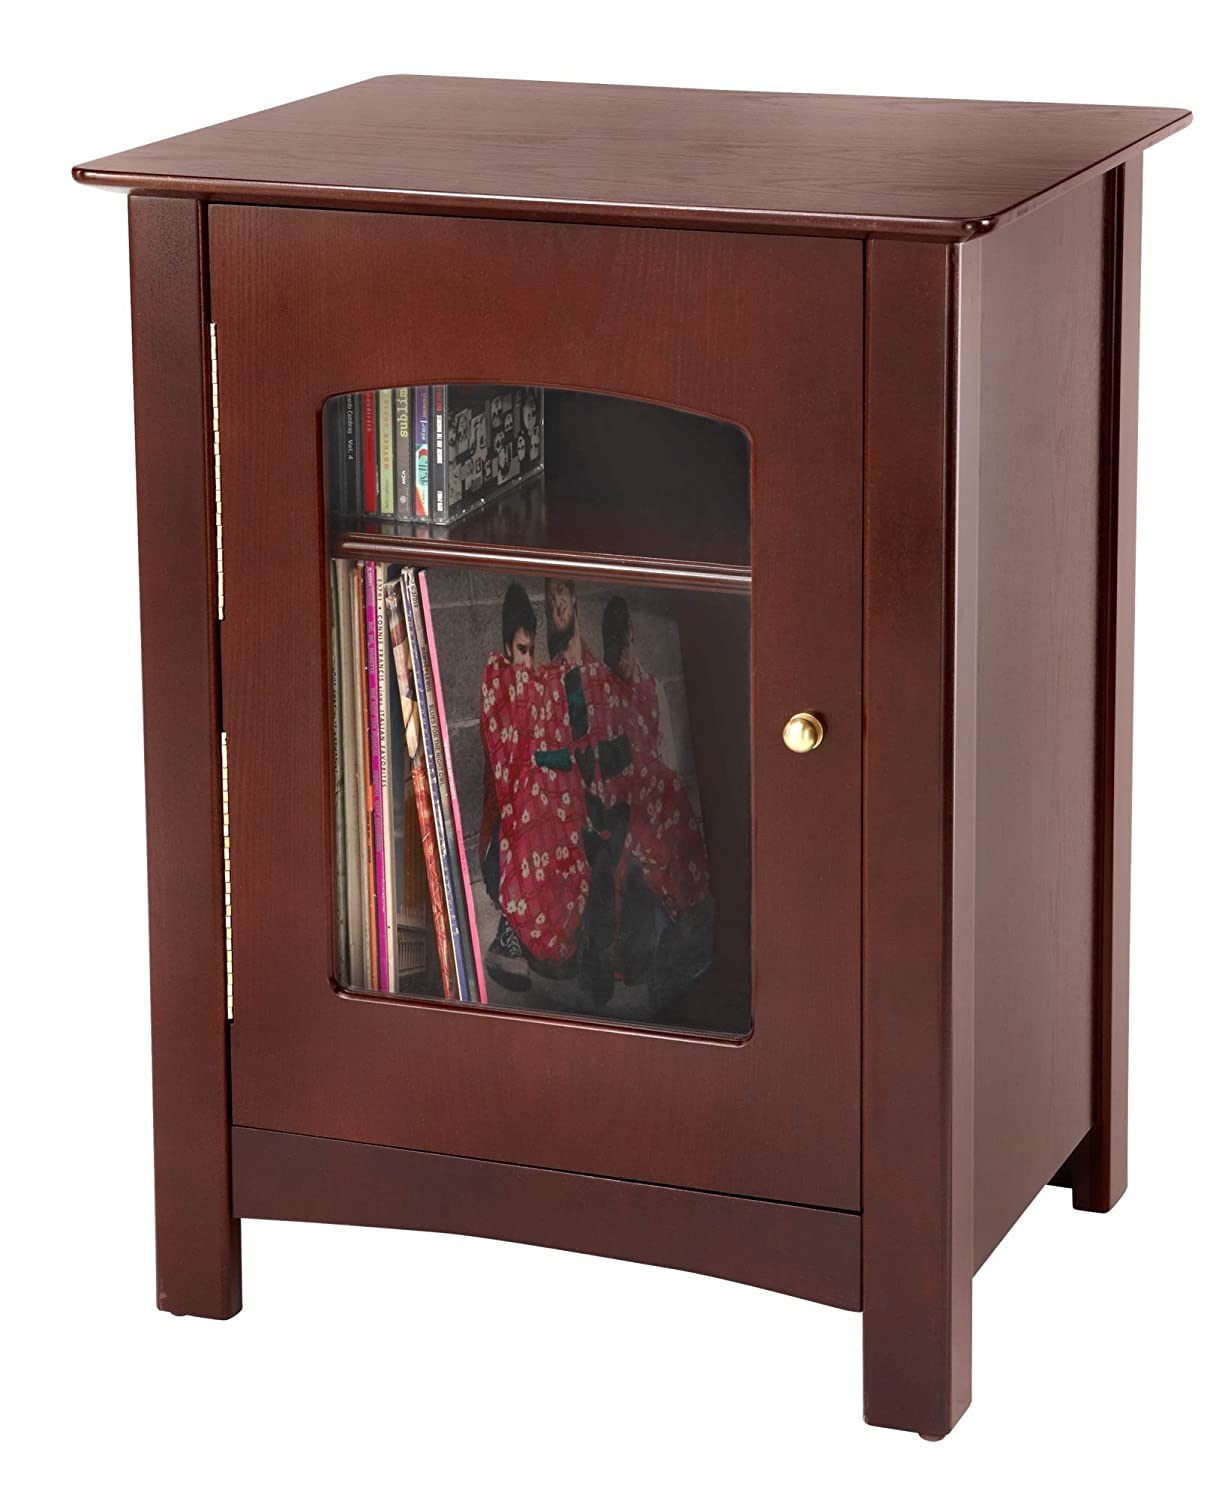 hidden cd you storage cabinet idea download withindimensions dvd can and arresting x